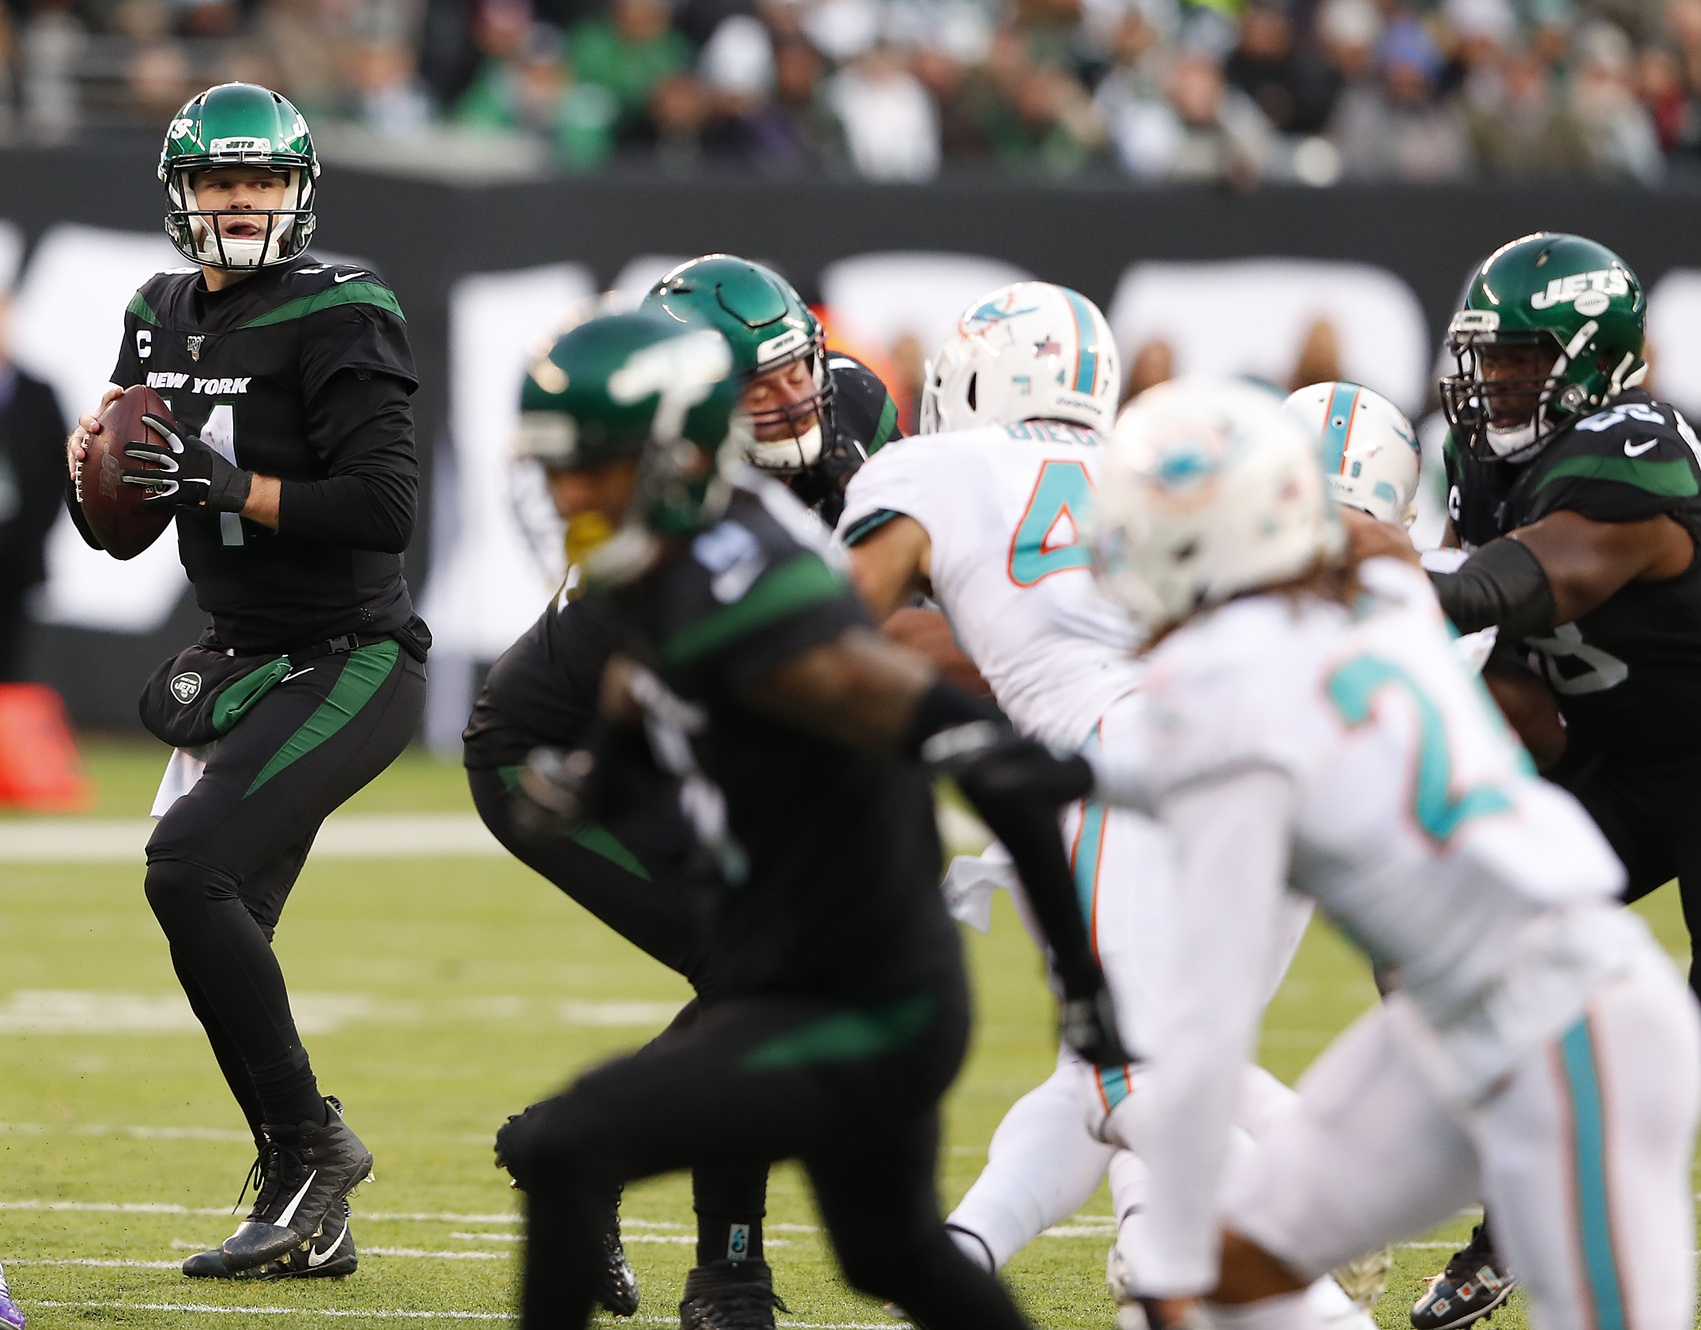 Two Clutch Plays from Vyncint Smith Spark Jets Comeback Win Over the Dolphins